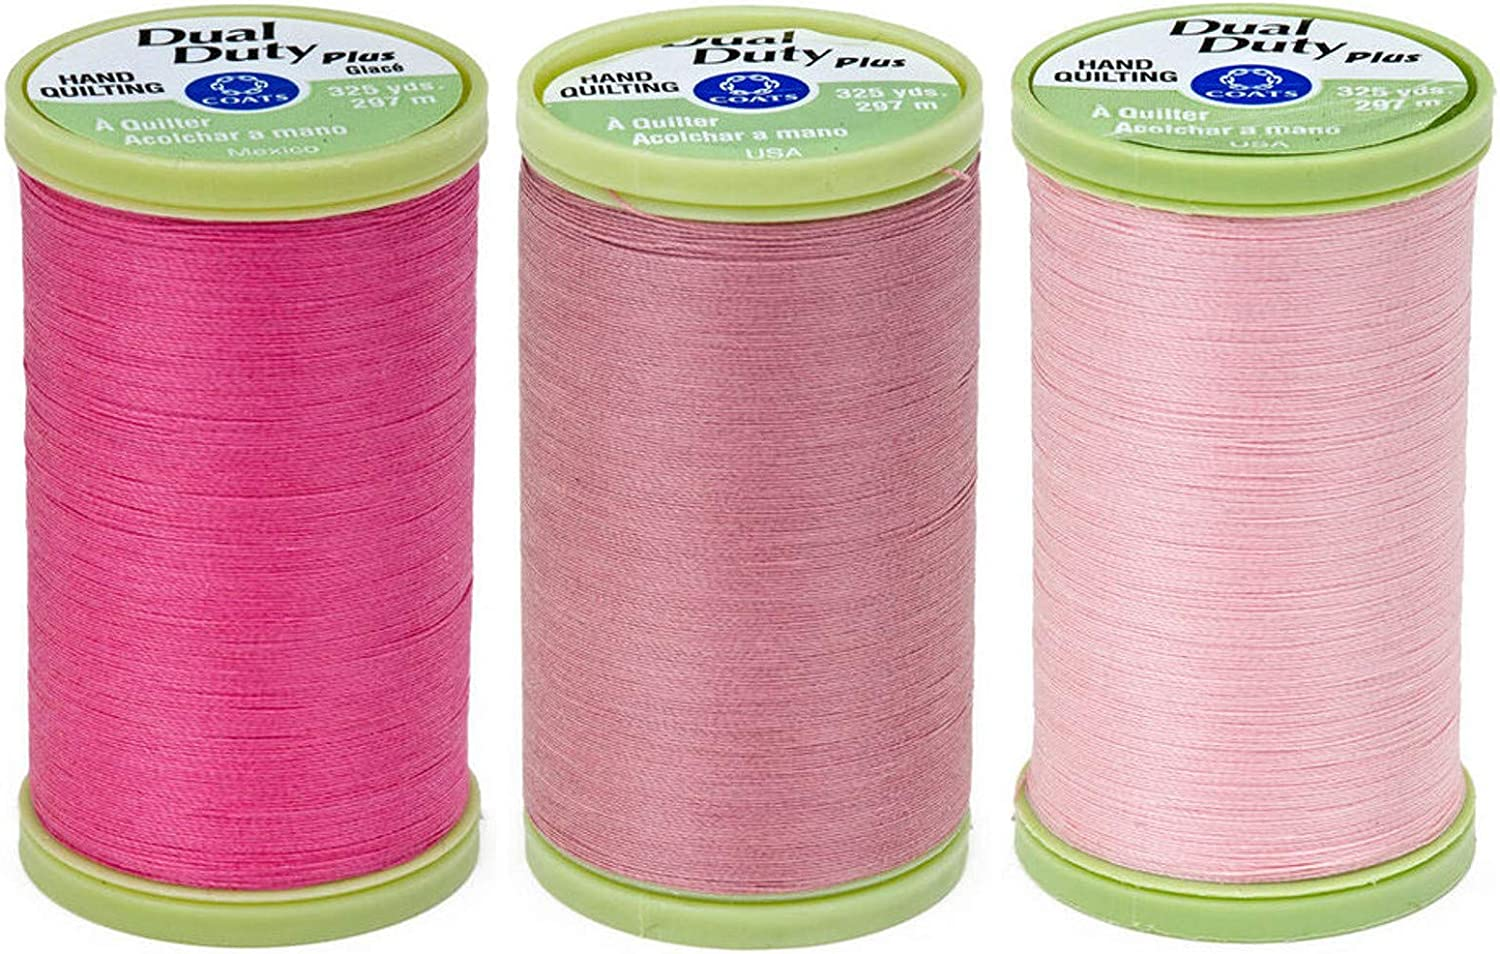 2-Pack Bundle Coats /& Clark Dual Duty Plus Hand Quilting Thread 325yds Hot Pink s960-1840